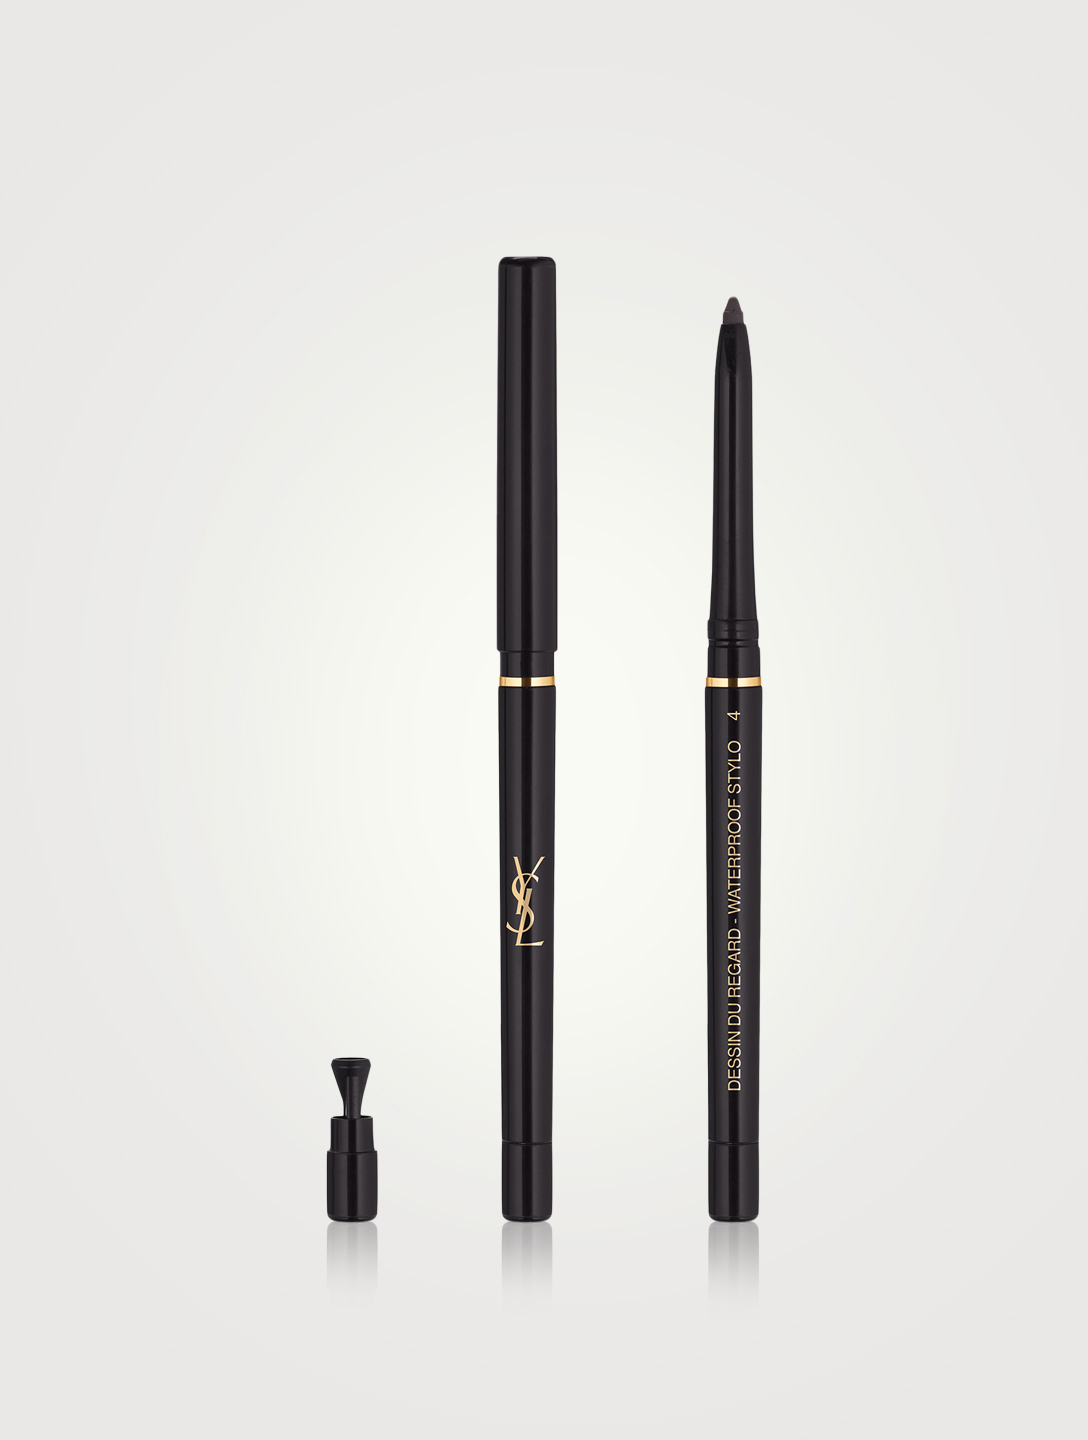 YVES SAINT LAURENT Dessin du Regard Waterproof Stylo Pencil Beauty Grey